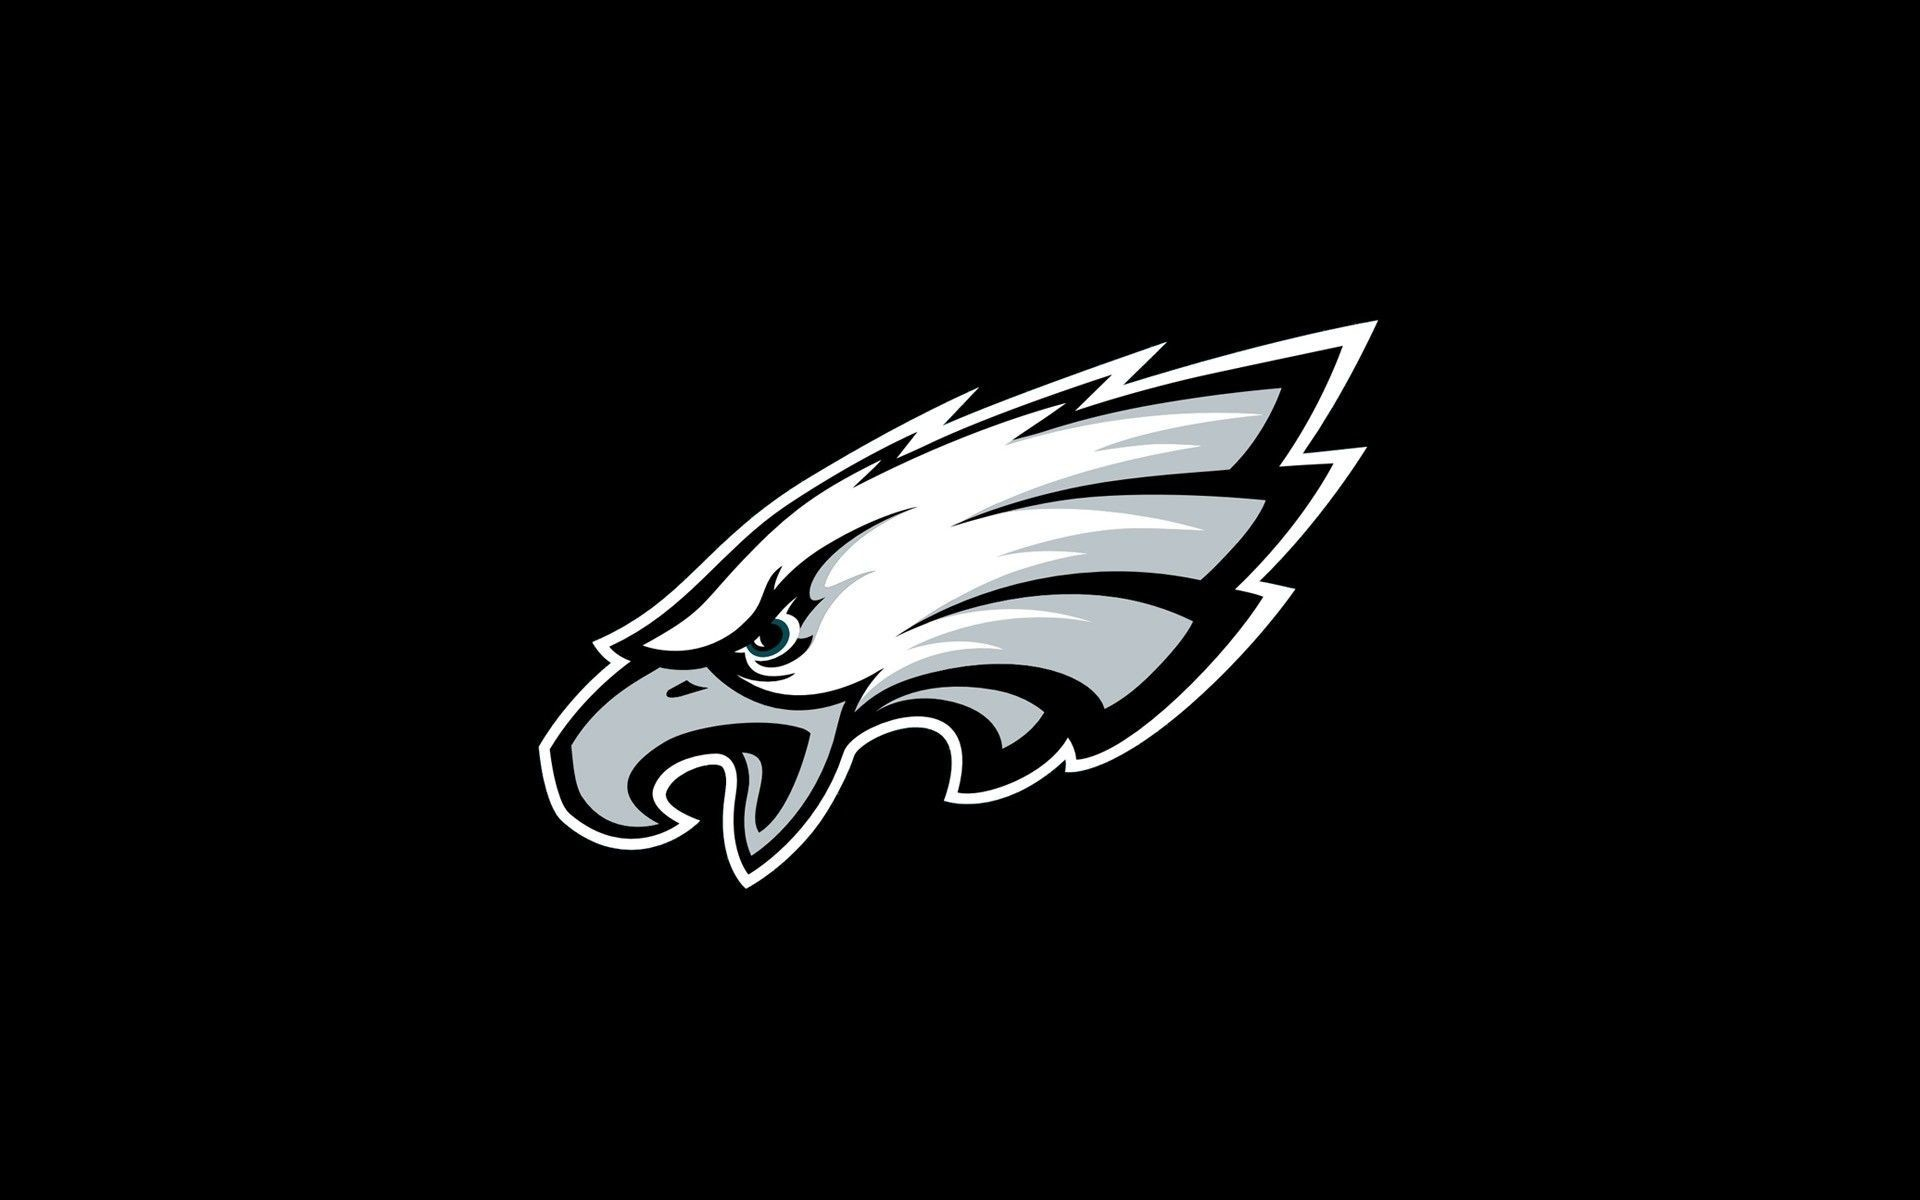 1920x1200 2048x1463 Philadelphia Eagles Wallpaper HD Pixels Talk 1920×1200 Free Philadelphia  Eagles Wallpapers | Adorable Wallpapers